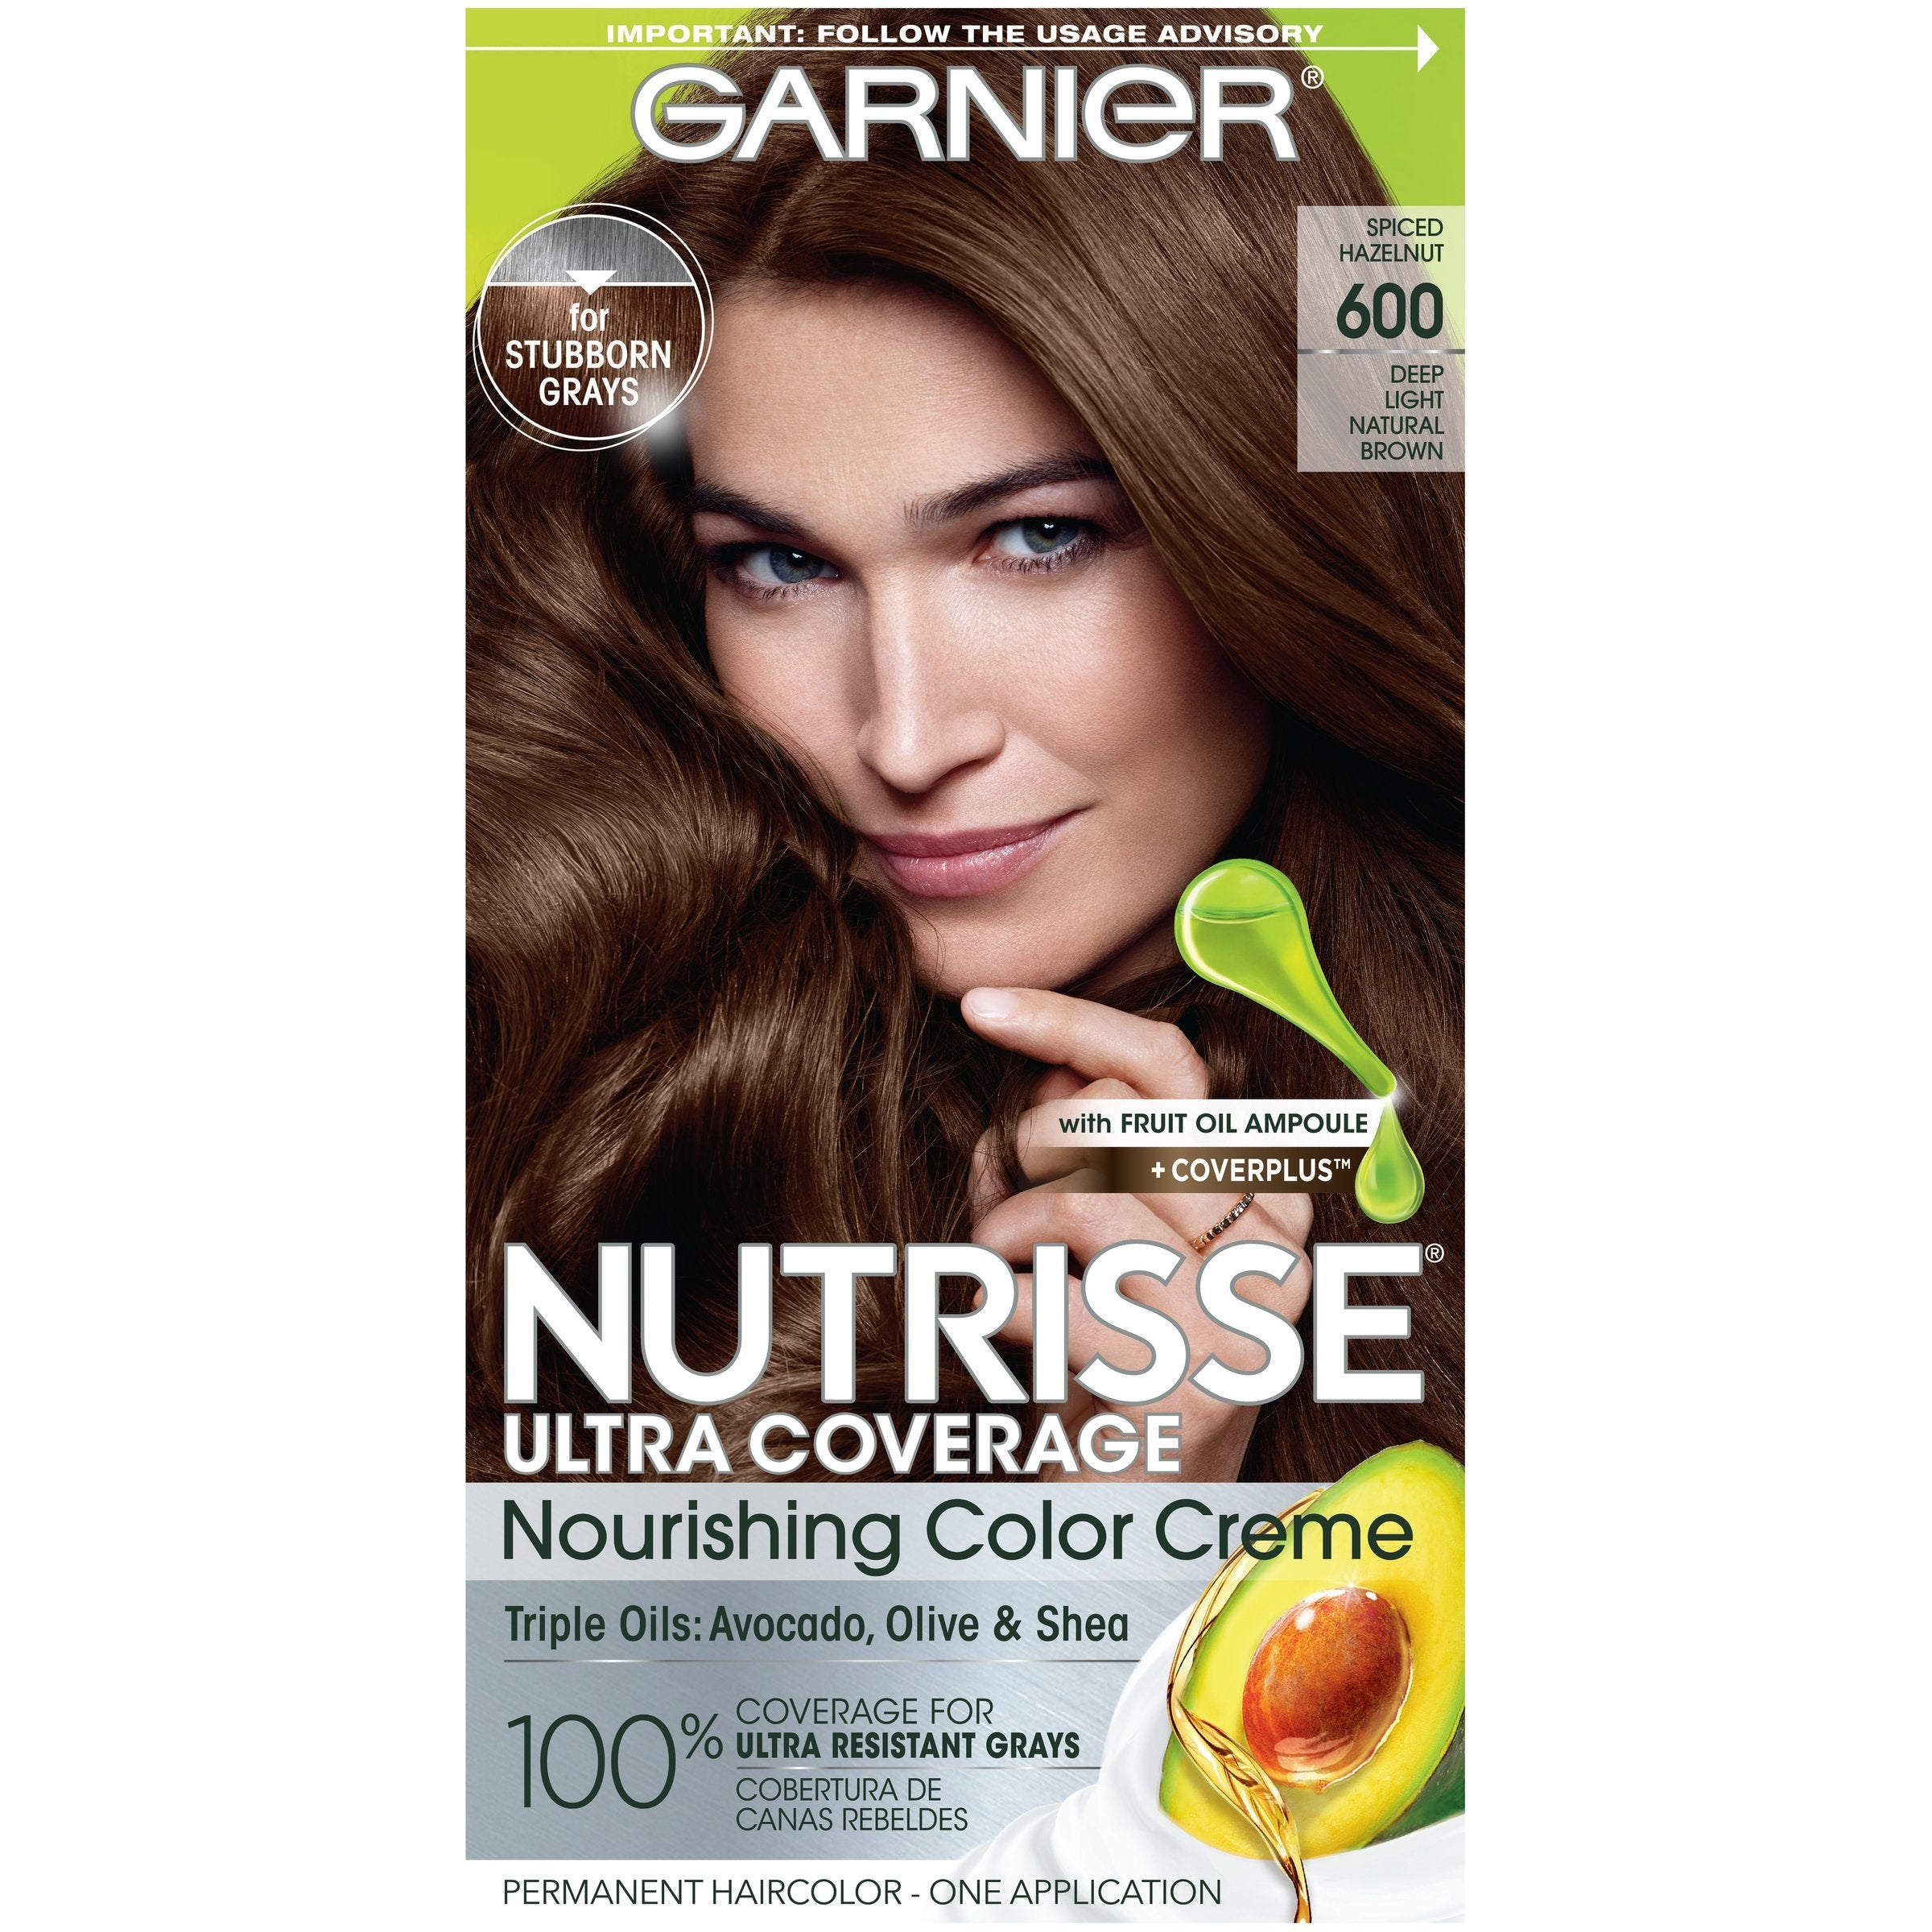 Garnier Nutrisse Ultra Coverage Nourishing Hair Color Creme, Deep Light Natural Brown (Spiced Hazelnut) 600, 1 kit-CaribOnline